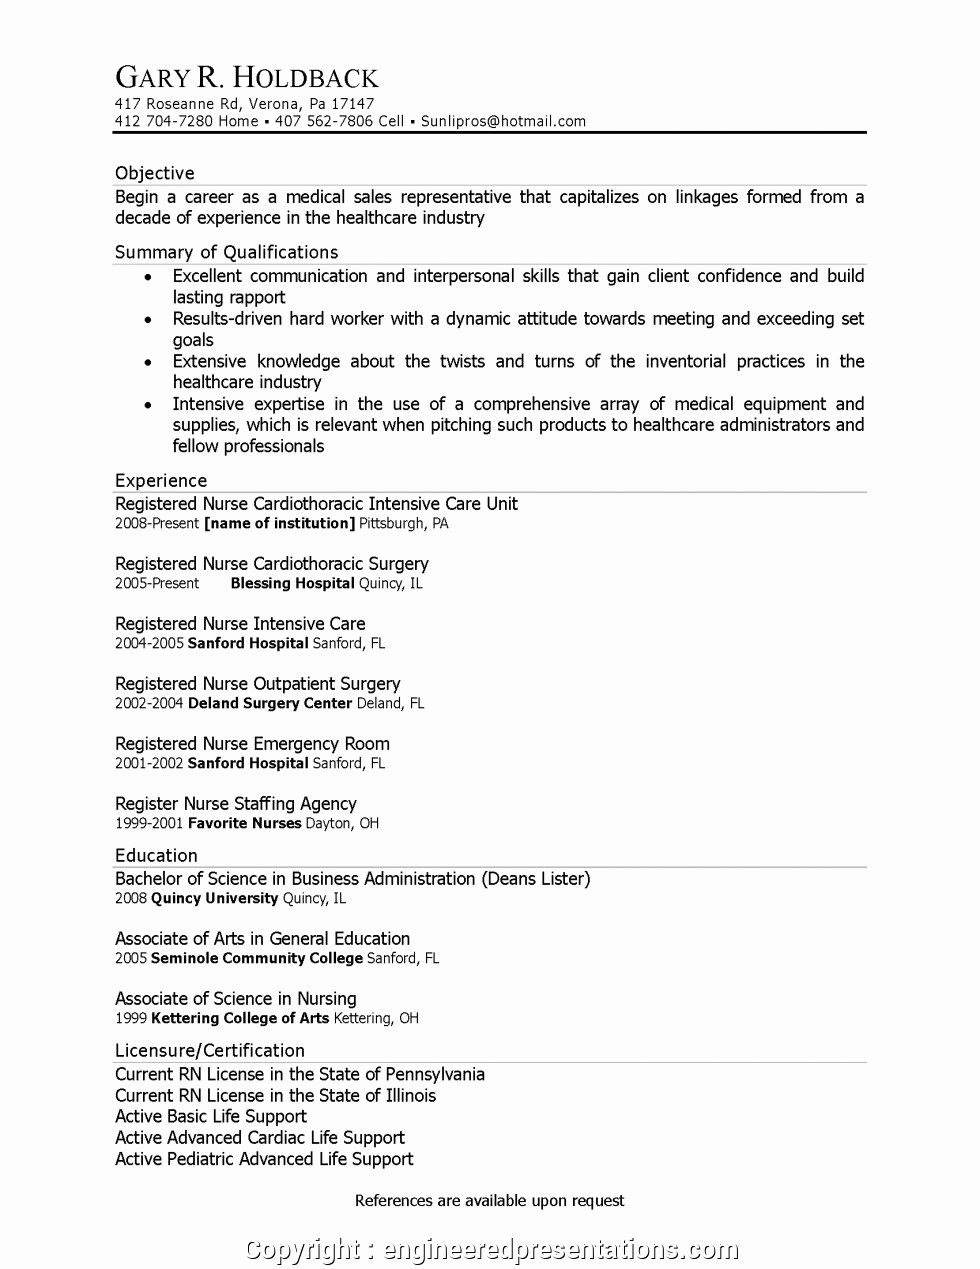 Free Career Change Resume Objective Samples Resume